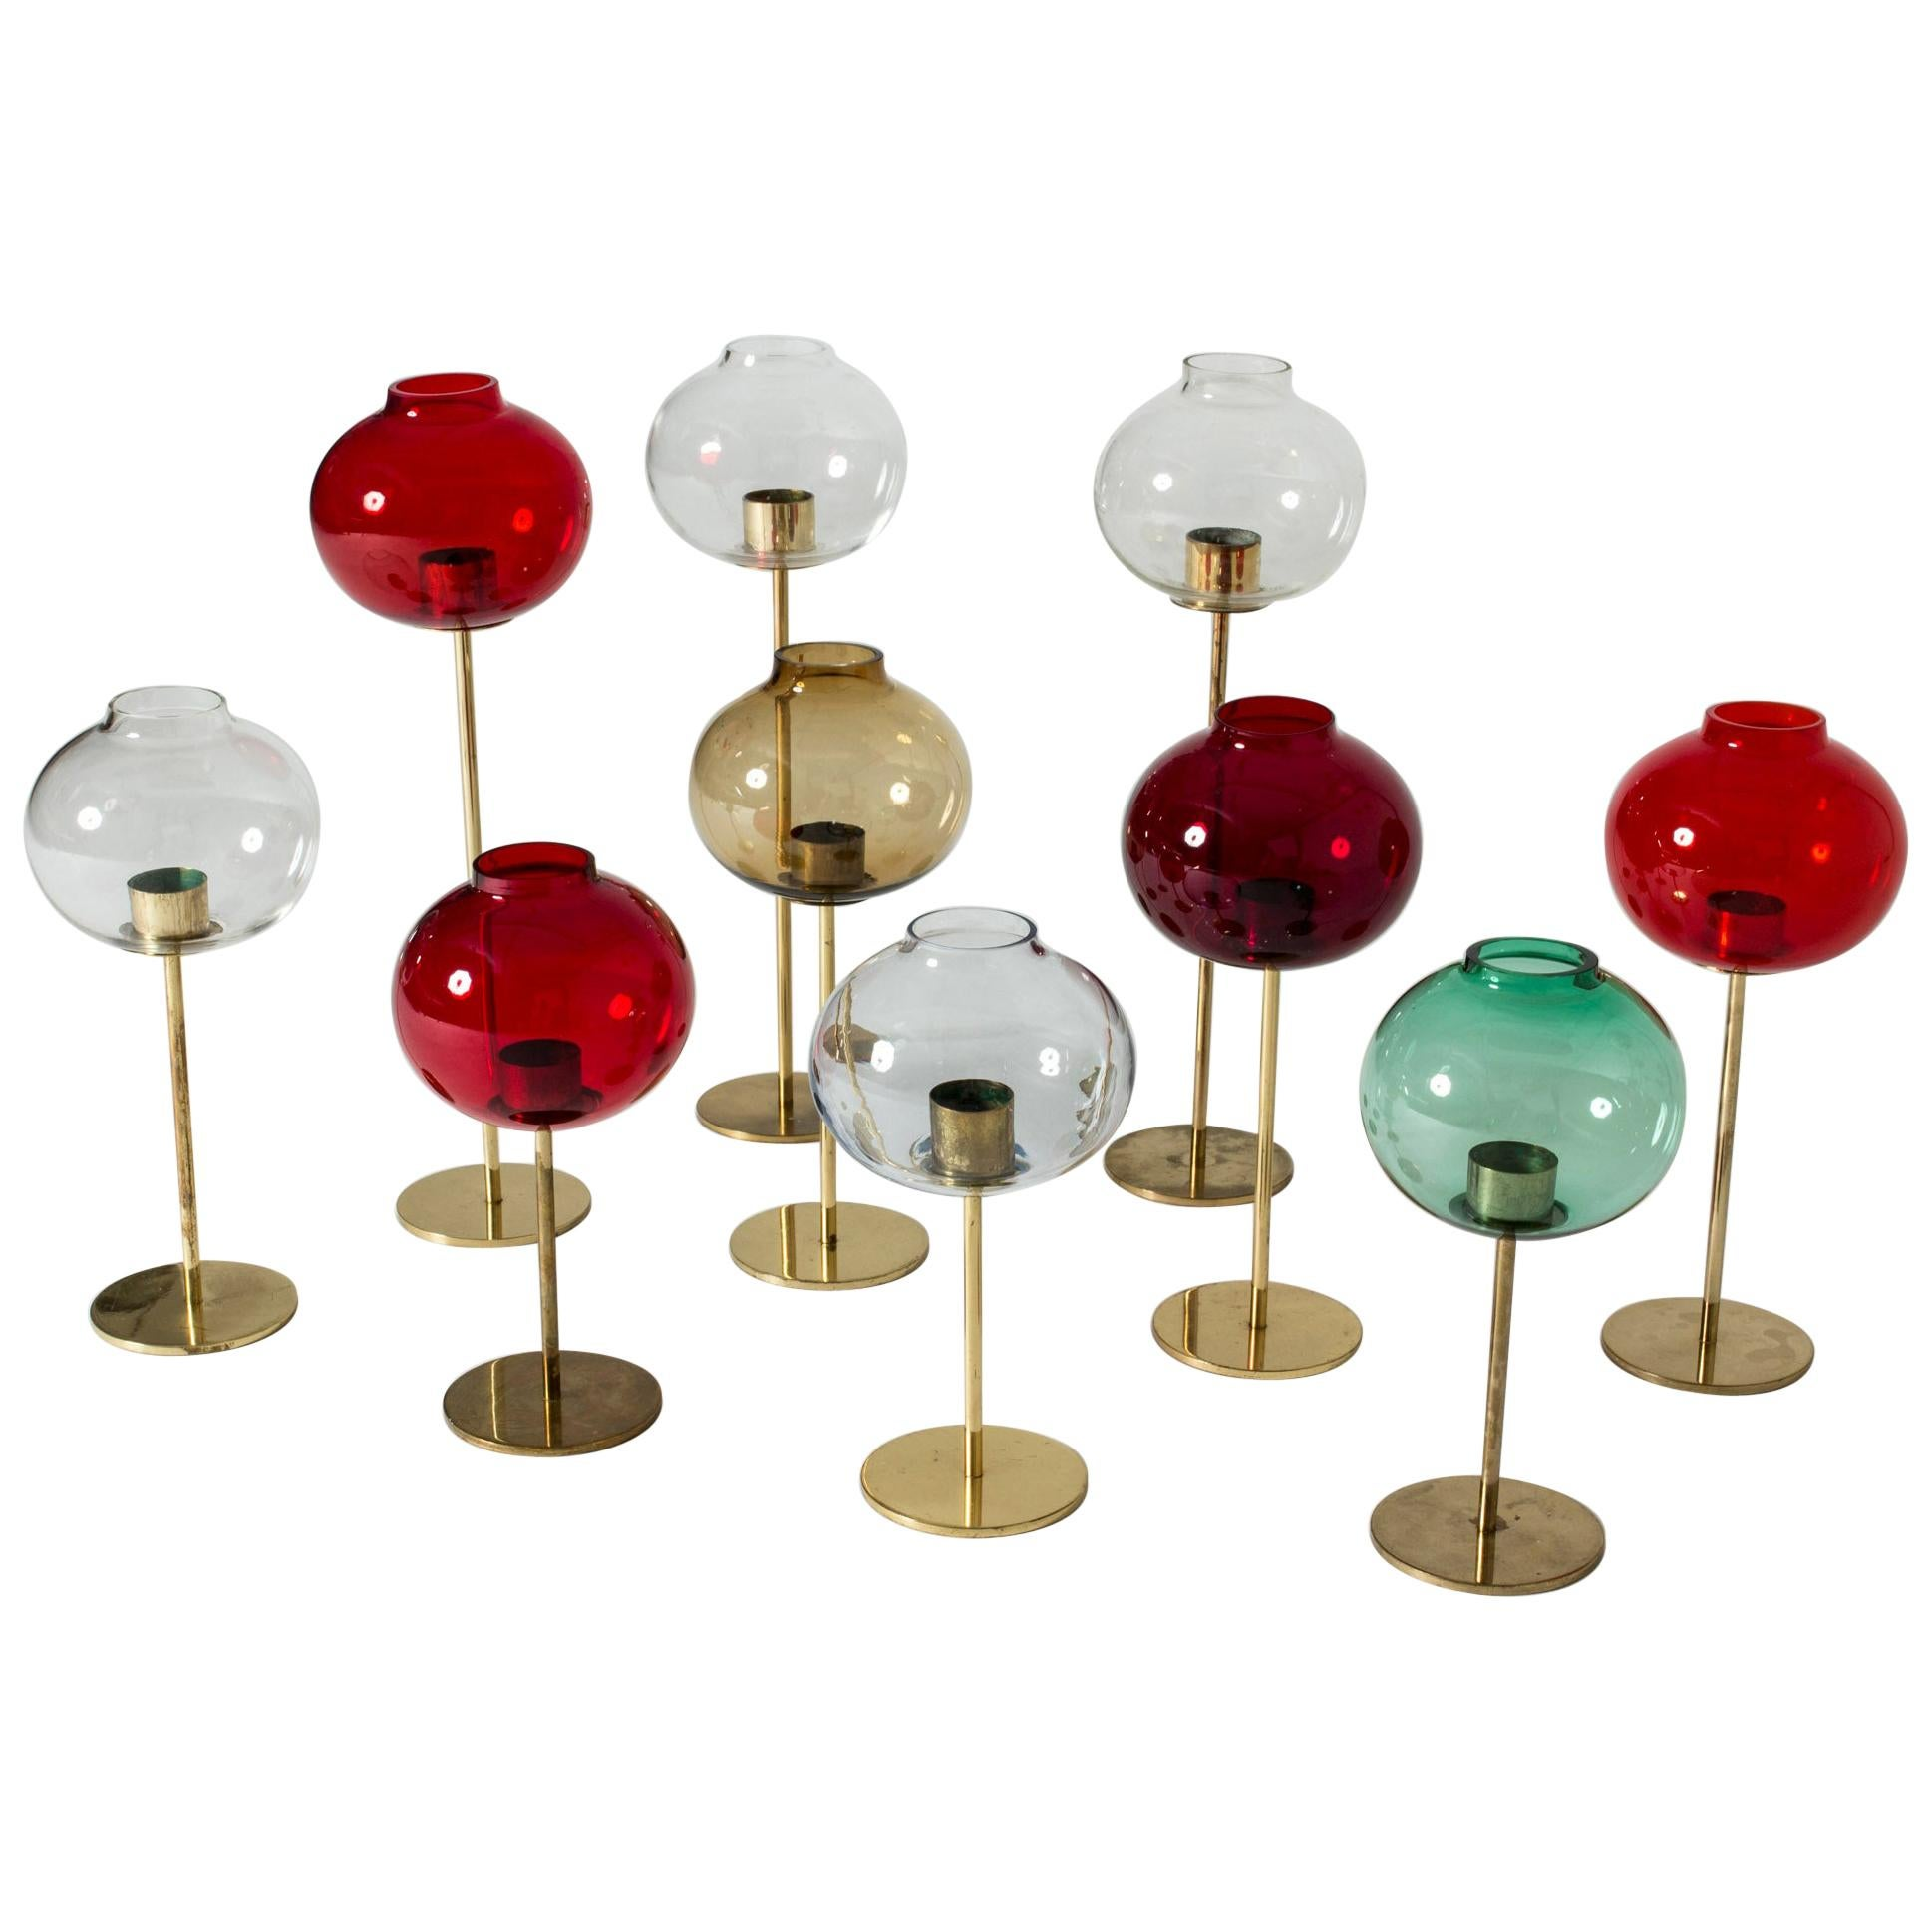 Set of Brass and Glass Candleholders by Hans-Agne Jakobsson